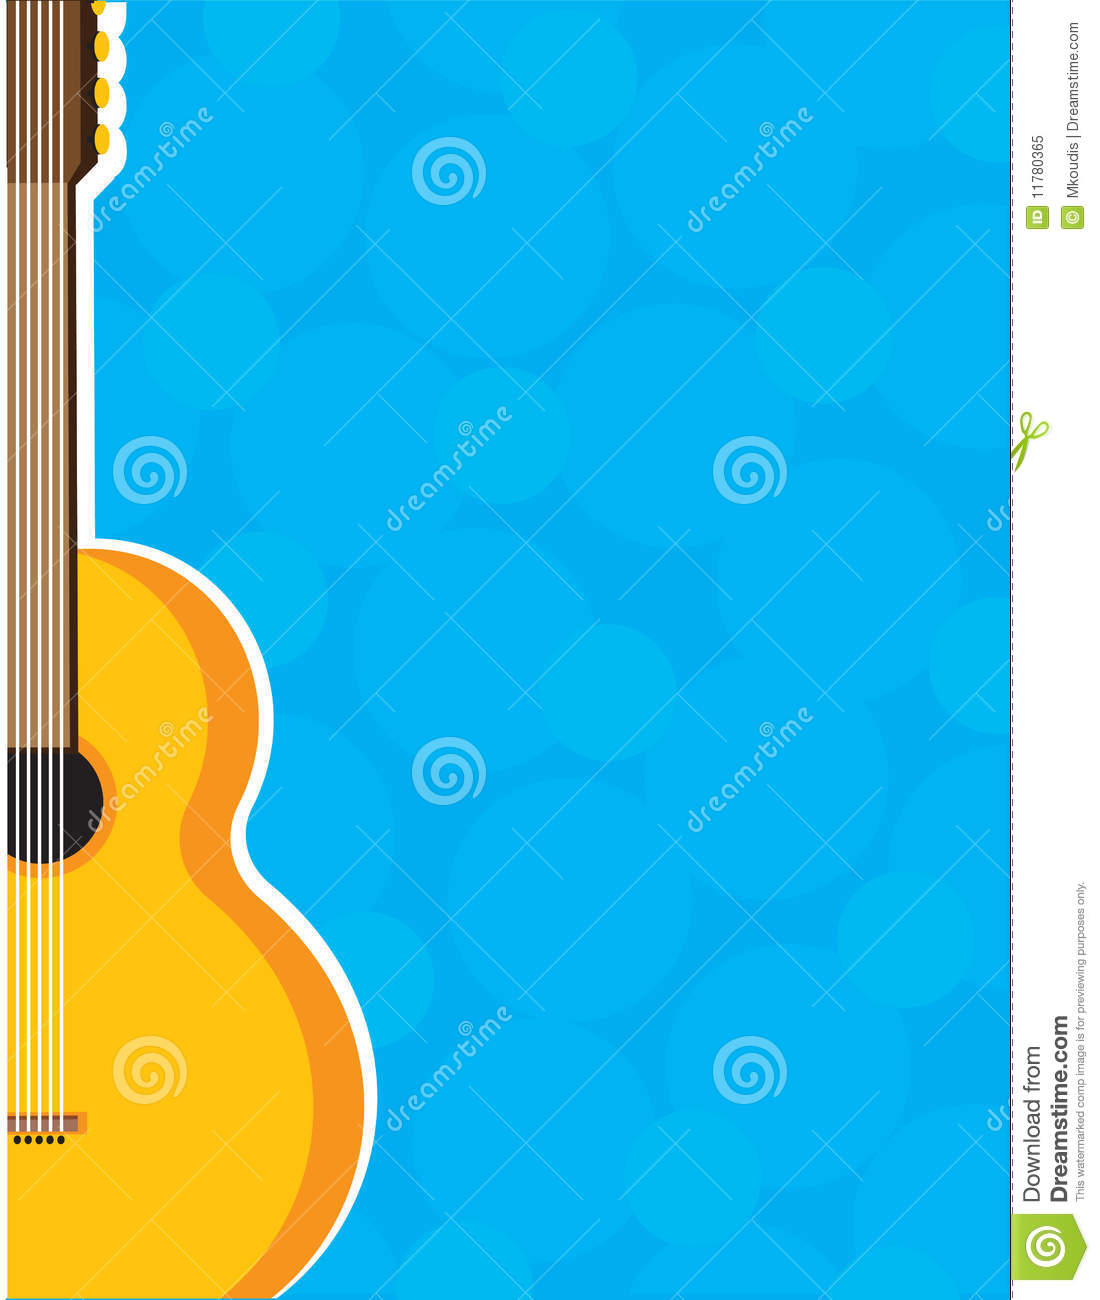 Guitar Photo Frames Borders Free